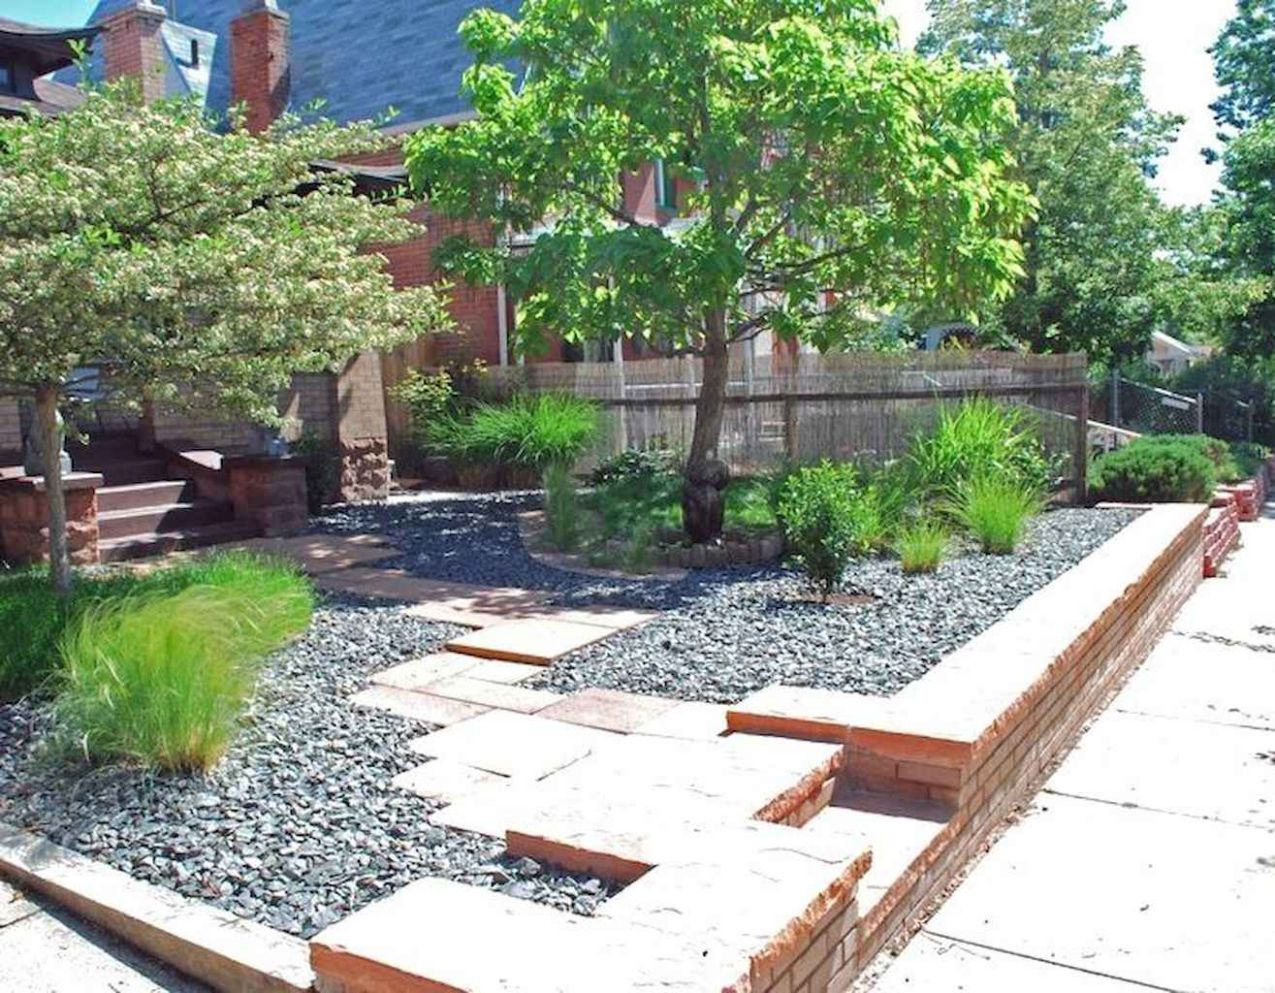 12 Low Maintenance Small Front Yard Landscaping Ideas - HomeSpecially